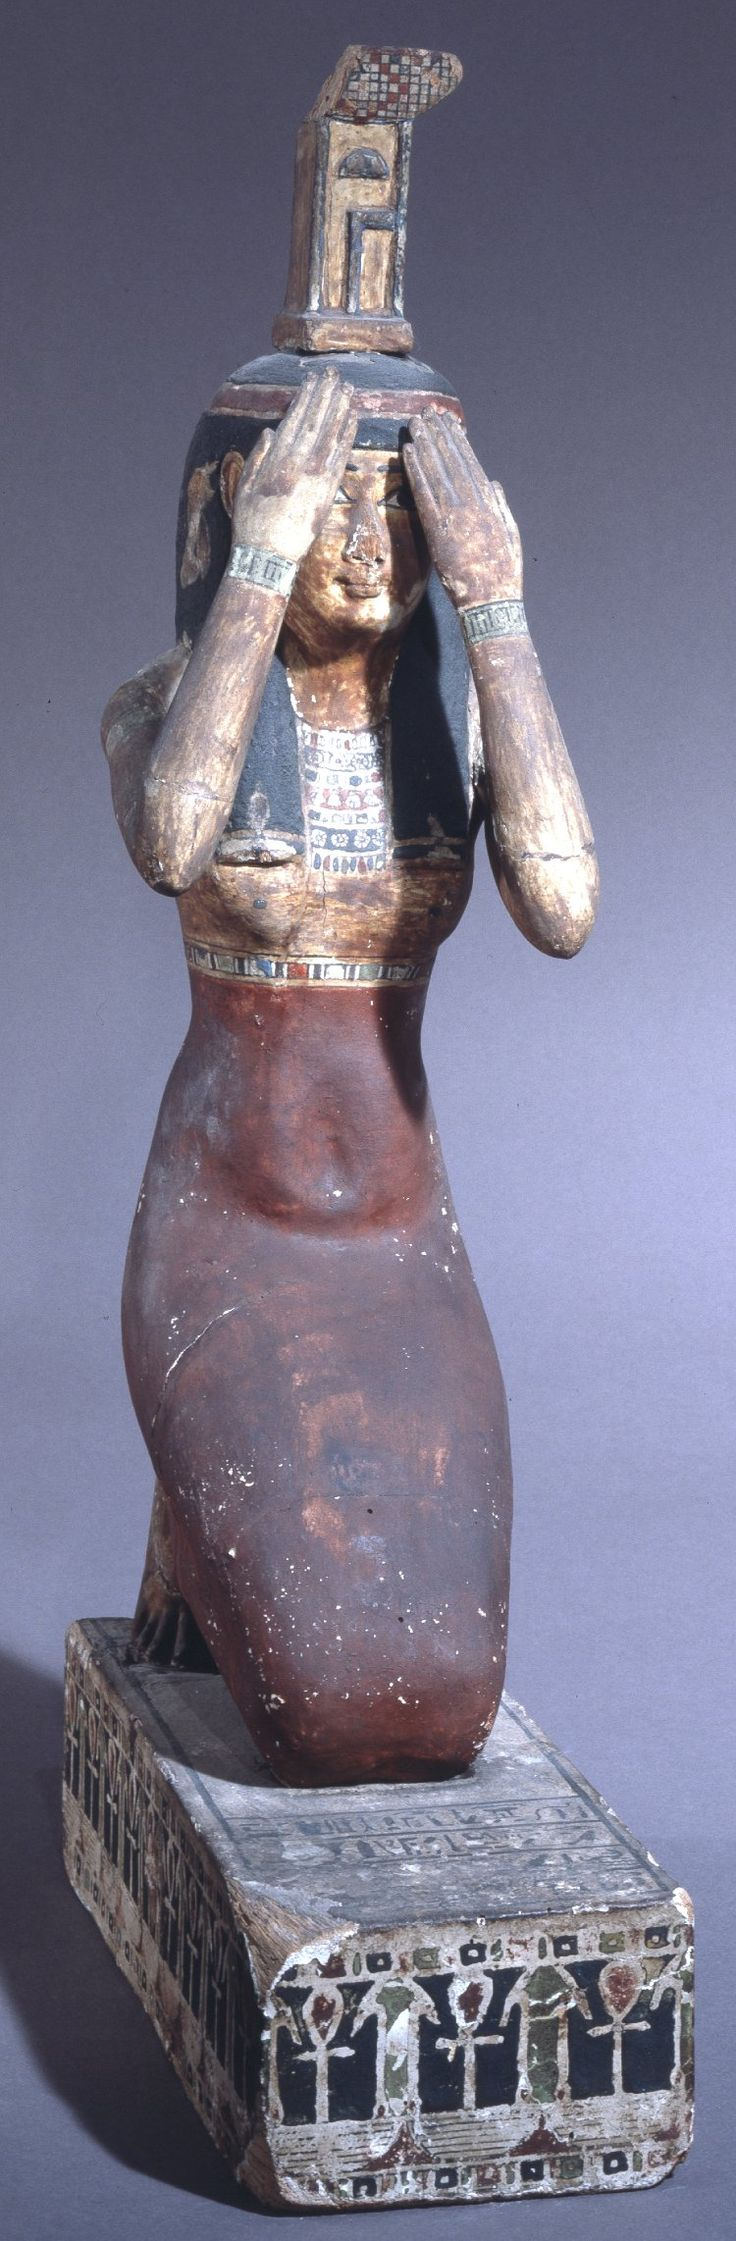 Wooden figure of Nephthys with the hands raised to the face in mourning. | The…